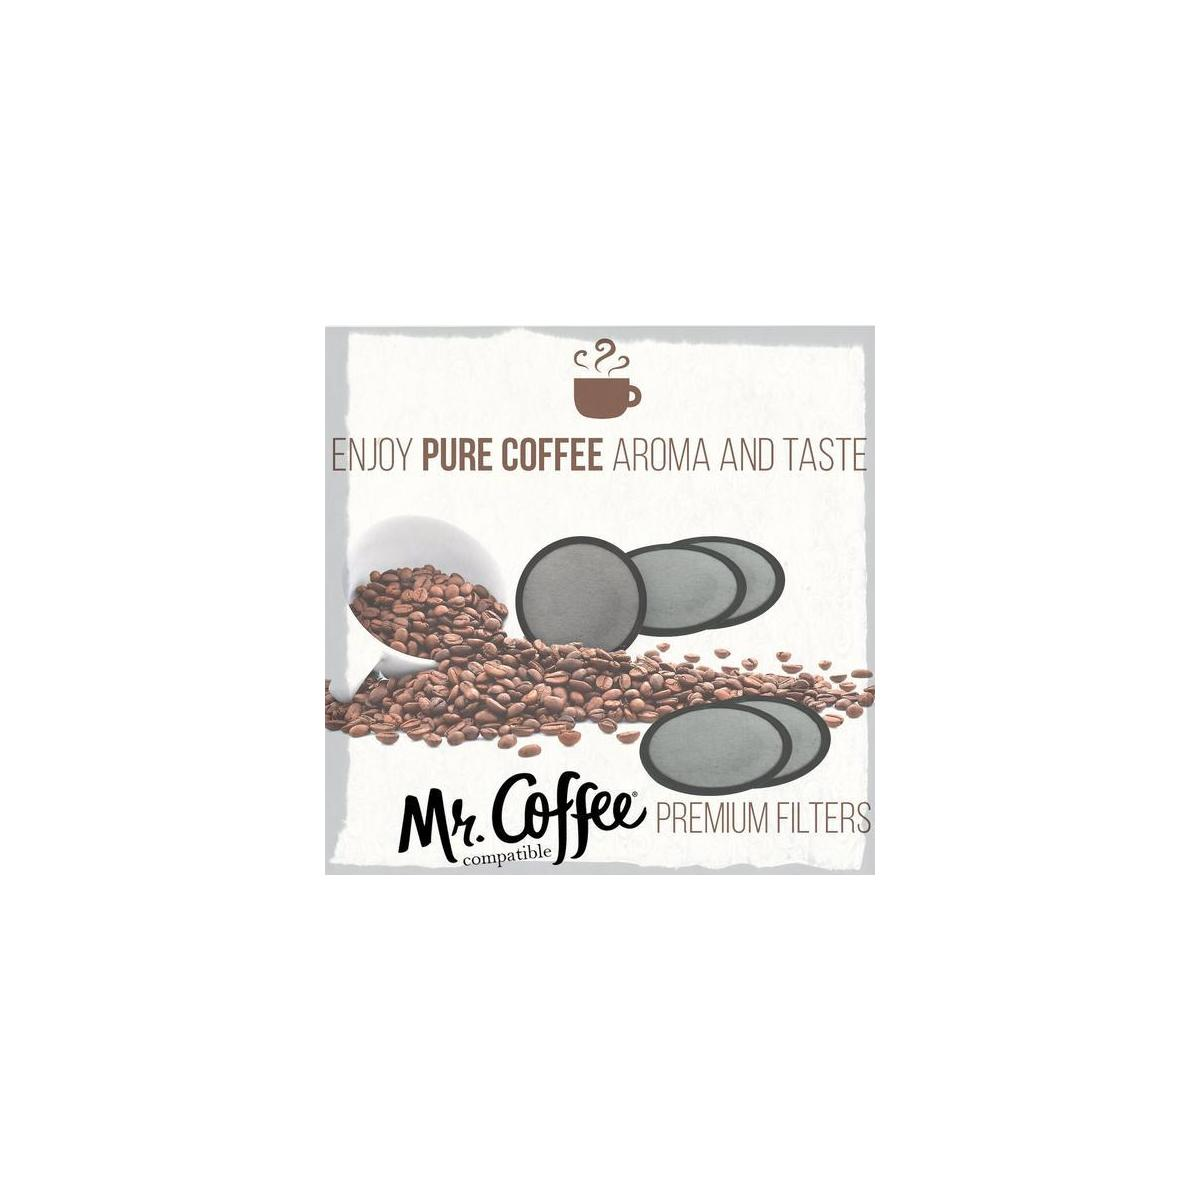 Premium Filter Discs for your MR. COFFEE Brewer